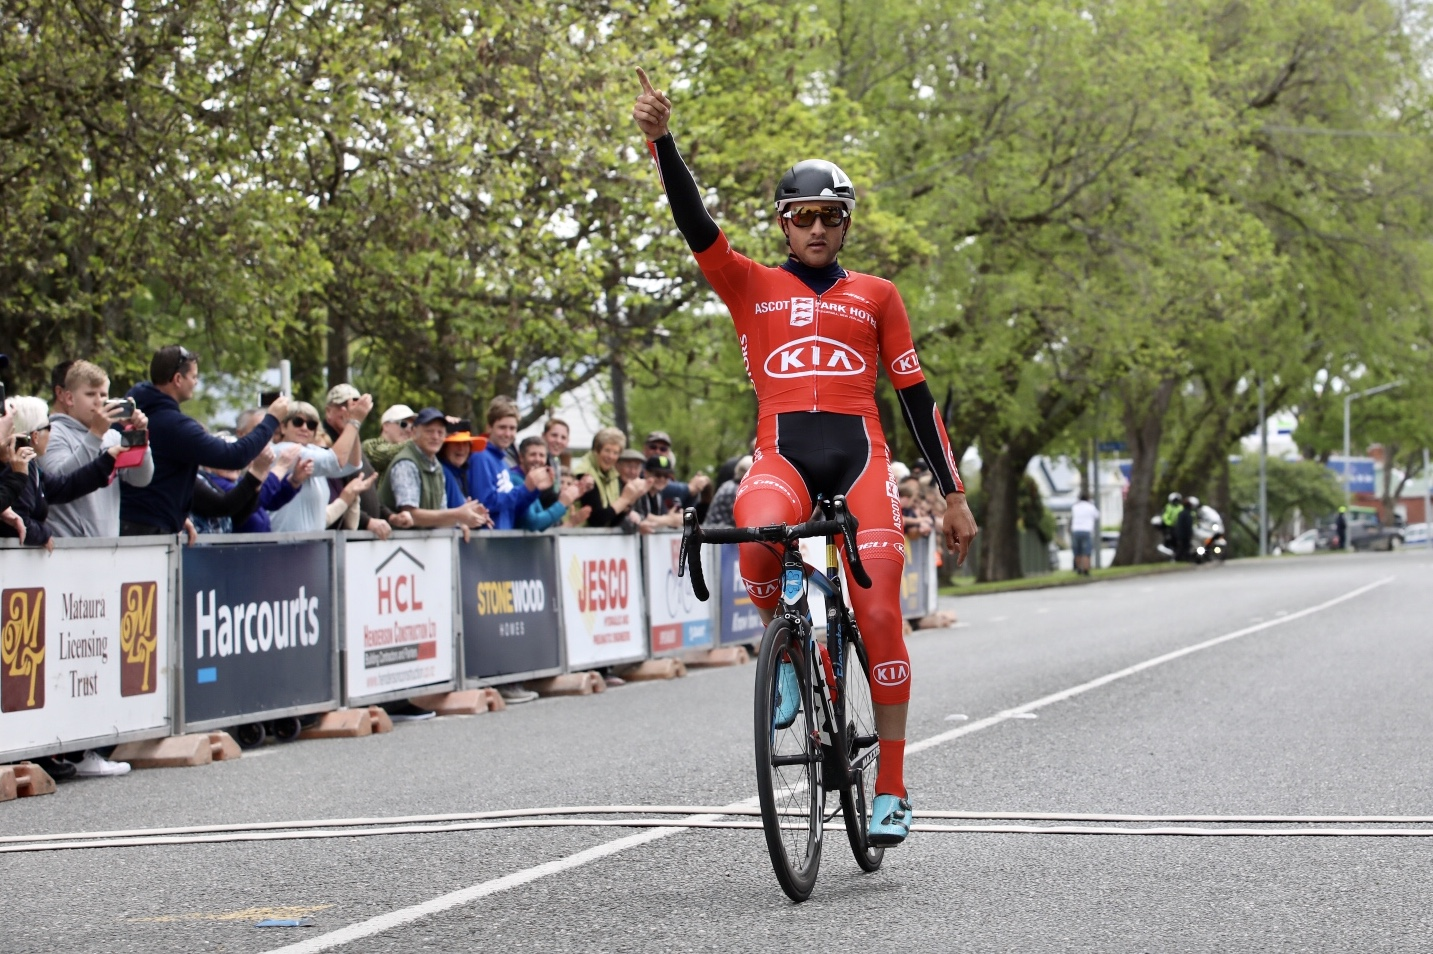 Photo: Canadian James Piccoli wins his second stage of the 2018 SBS Bank Tour of Southland, from Invercargill to Gore. Pic: James Jubb/Studio Jubb